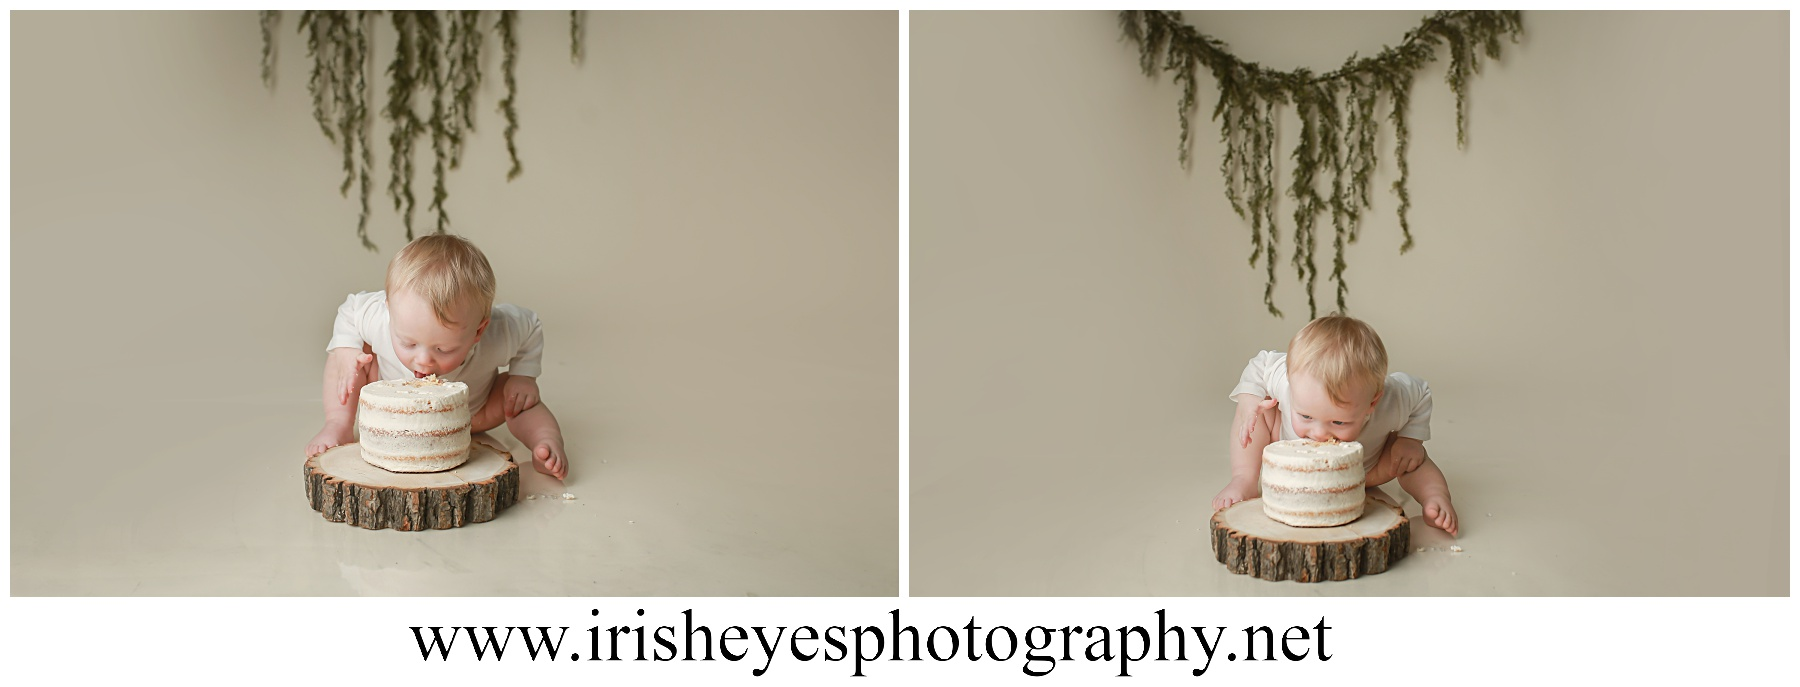 Gahanna Ohio Newborn Photographer_0214.jpg